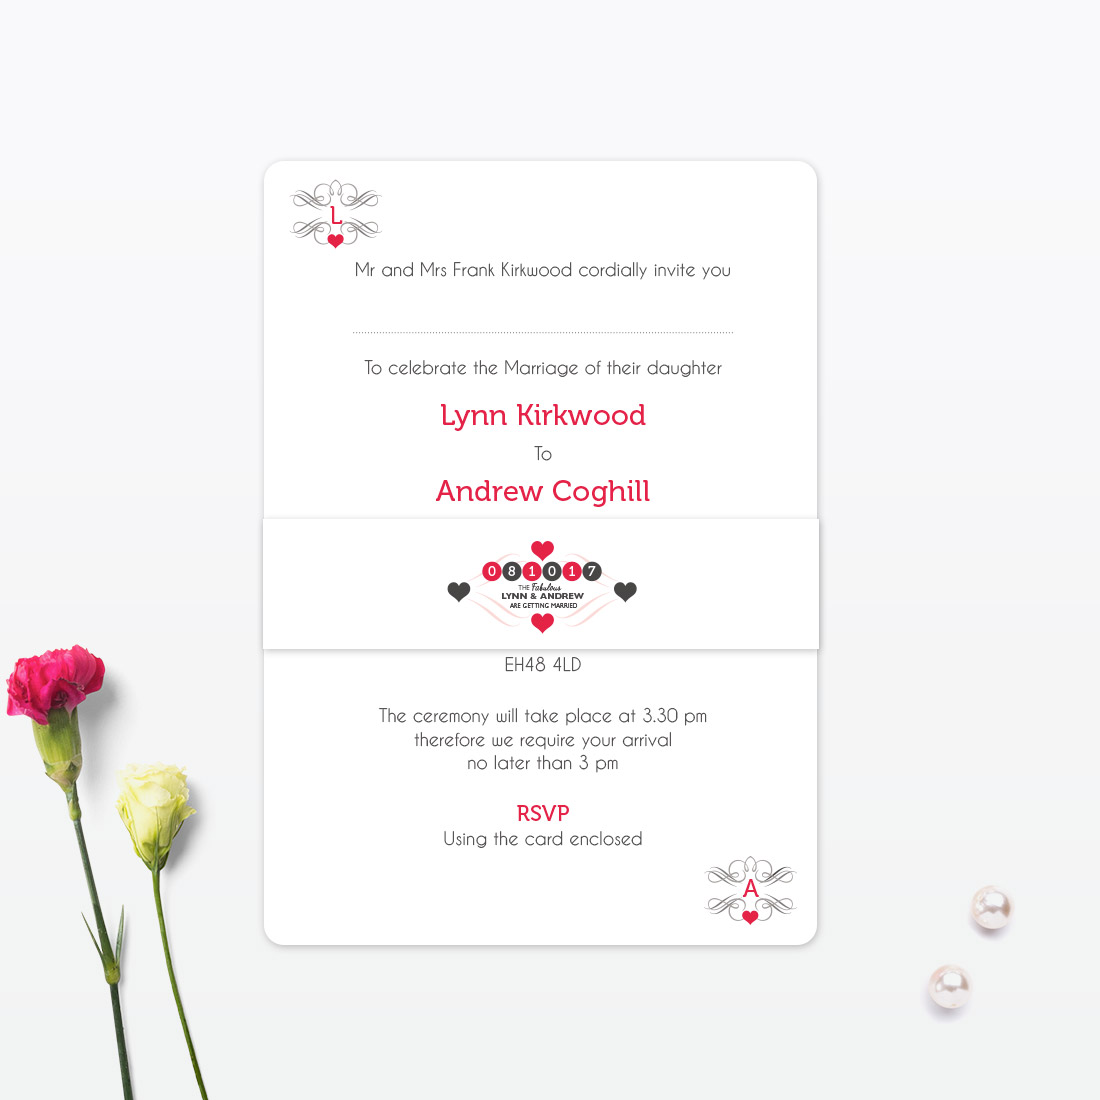 Viva Las Vegas Evening Invitation - Love Invited - Luxury Wedding ...